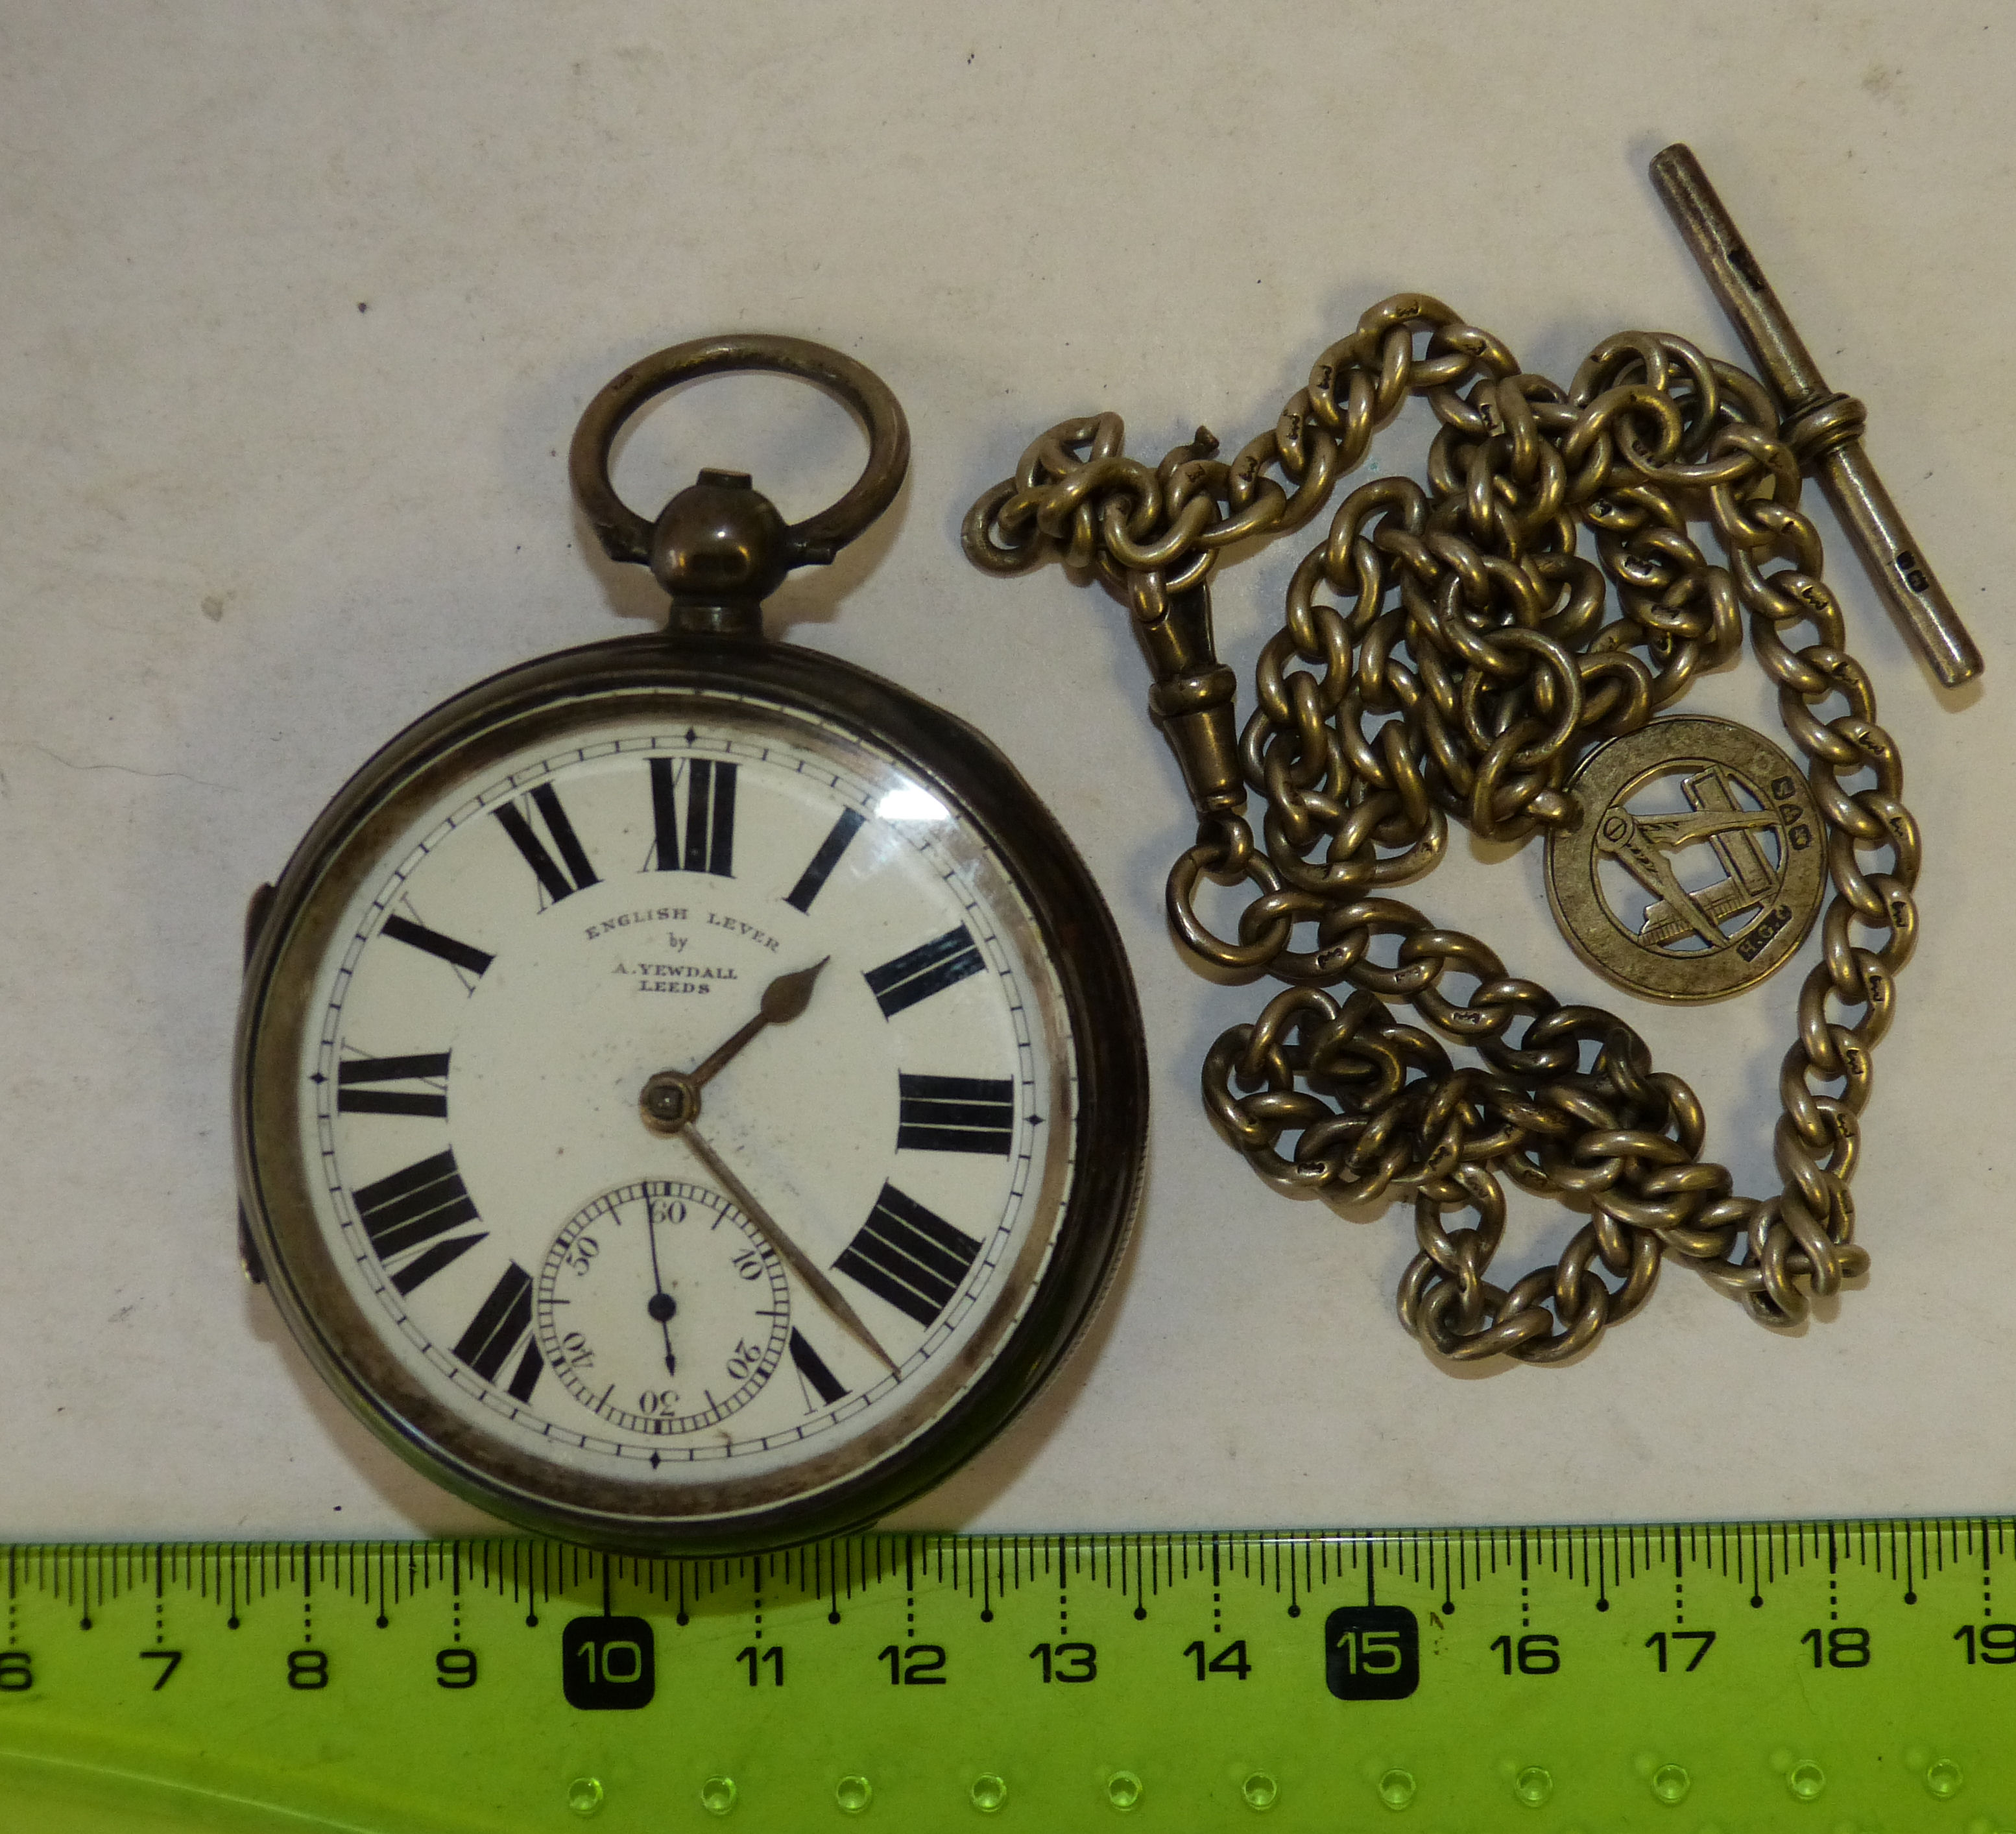 A Yewdall, Leeds Silver Open Faced Pocket Watch having white enamel dial with seconds dial and Roman numerals and with silver ch